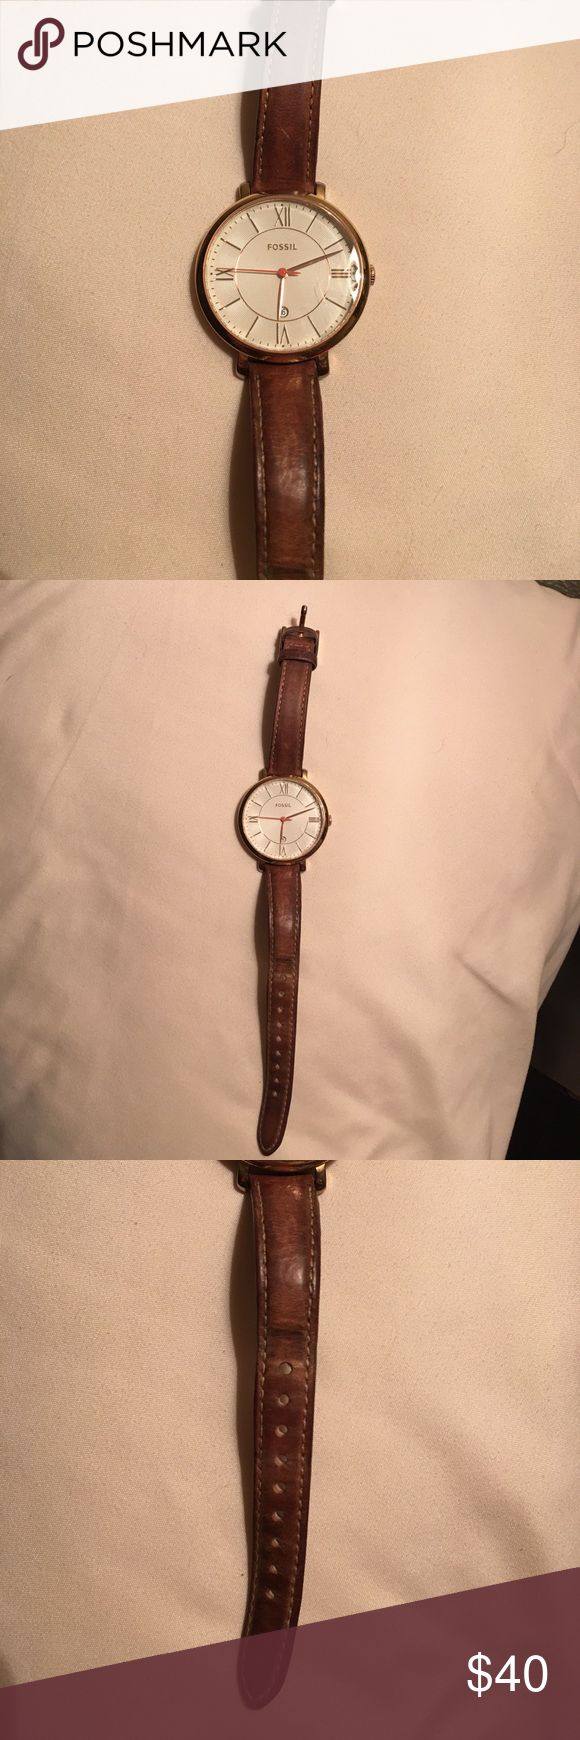 Women's Fossil Watch This watch is in good condition! A little worn on the band. Minimal scuffs. Fossil Accessories Watches